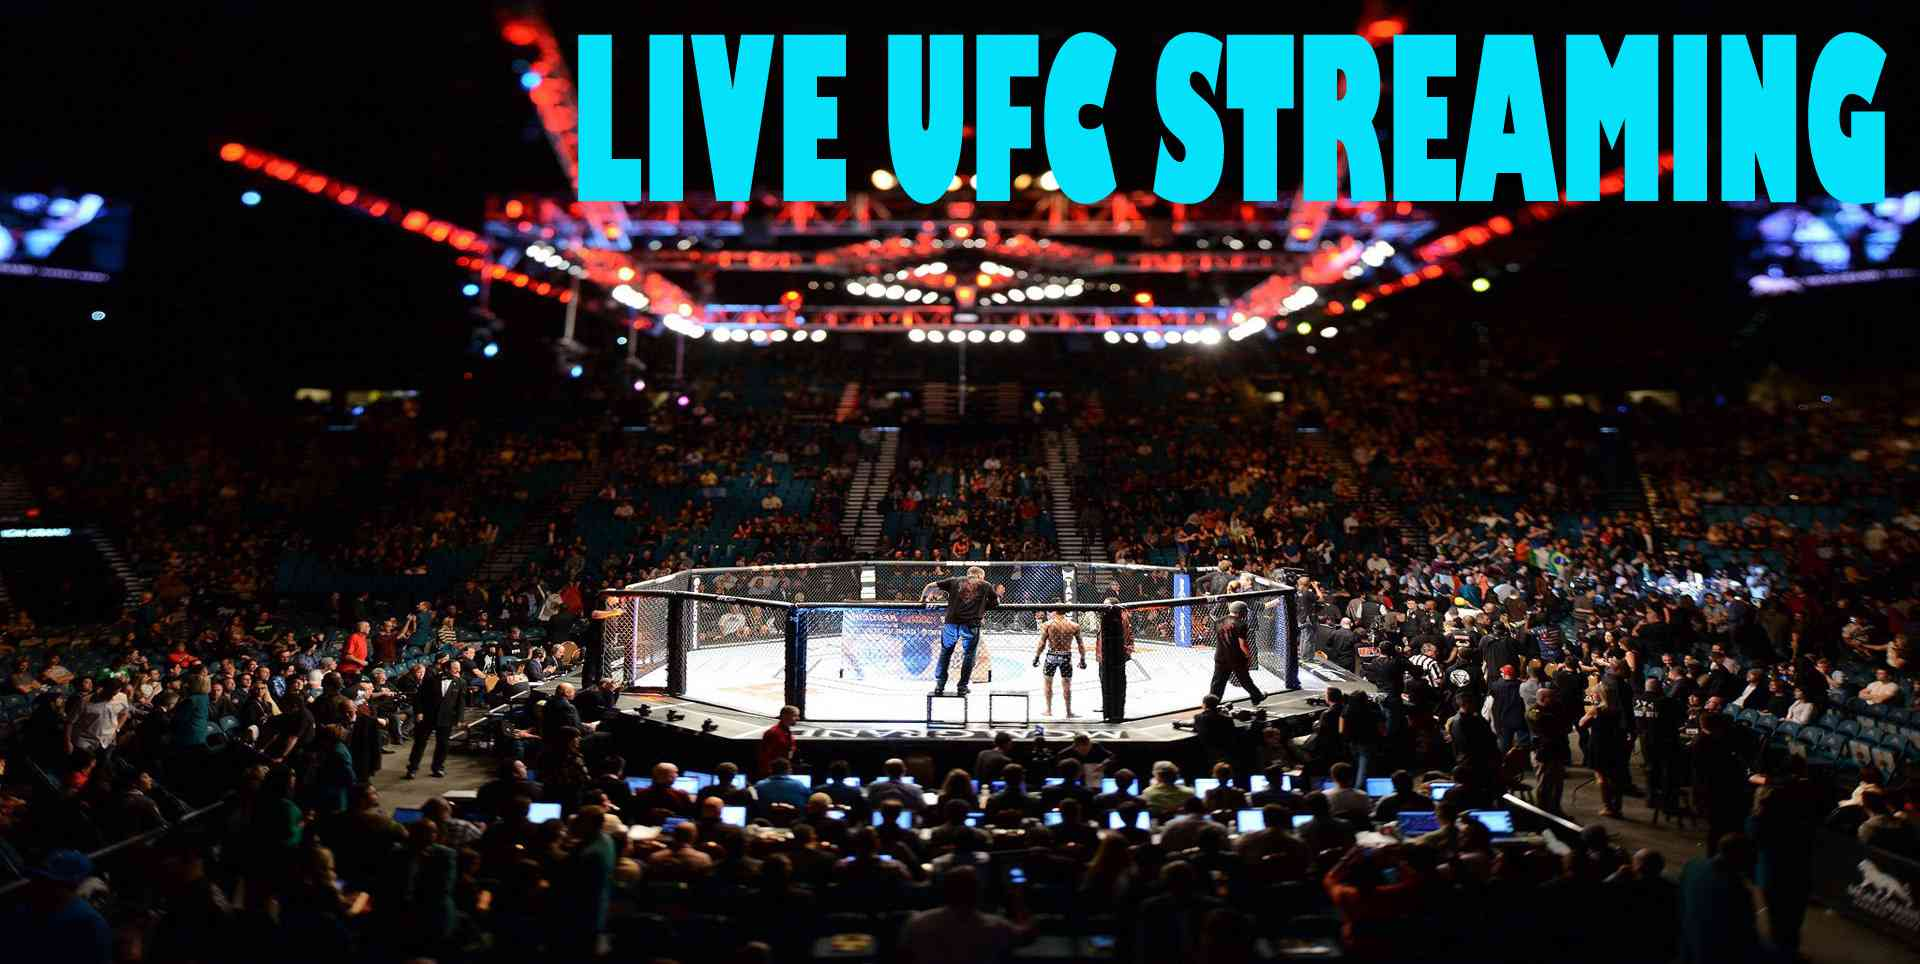 Jake Ellenberger vs Jorge Masvidal Live Streaming